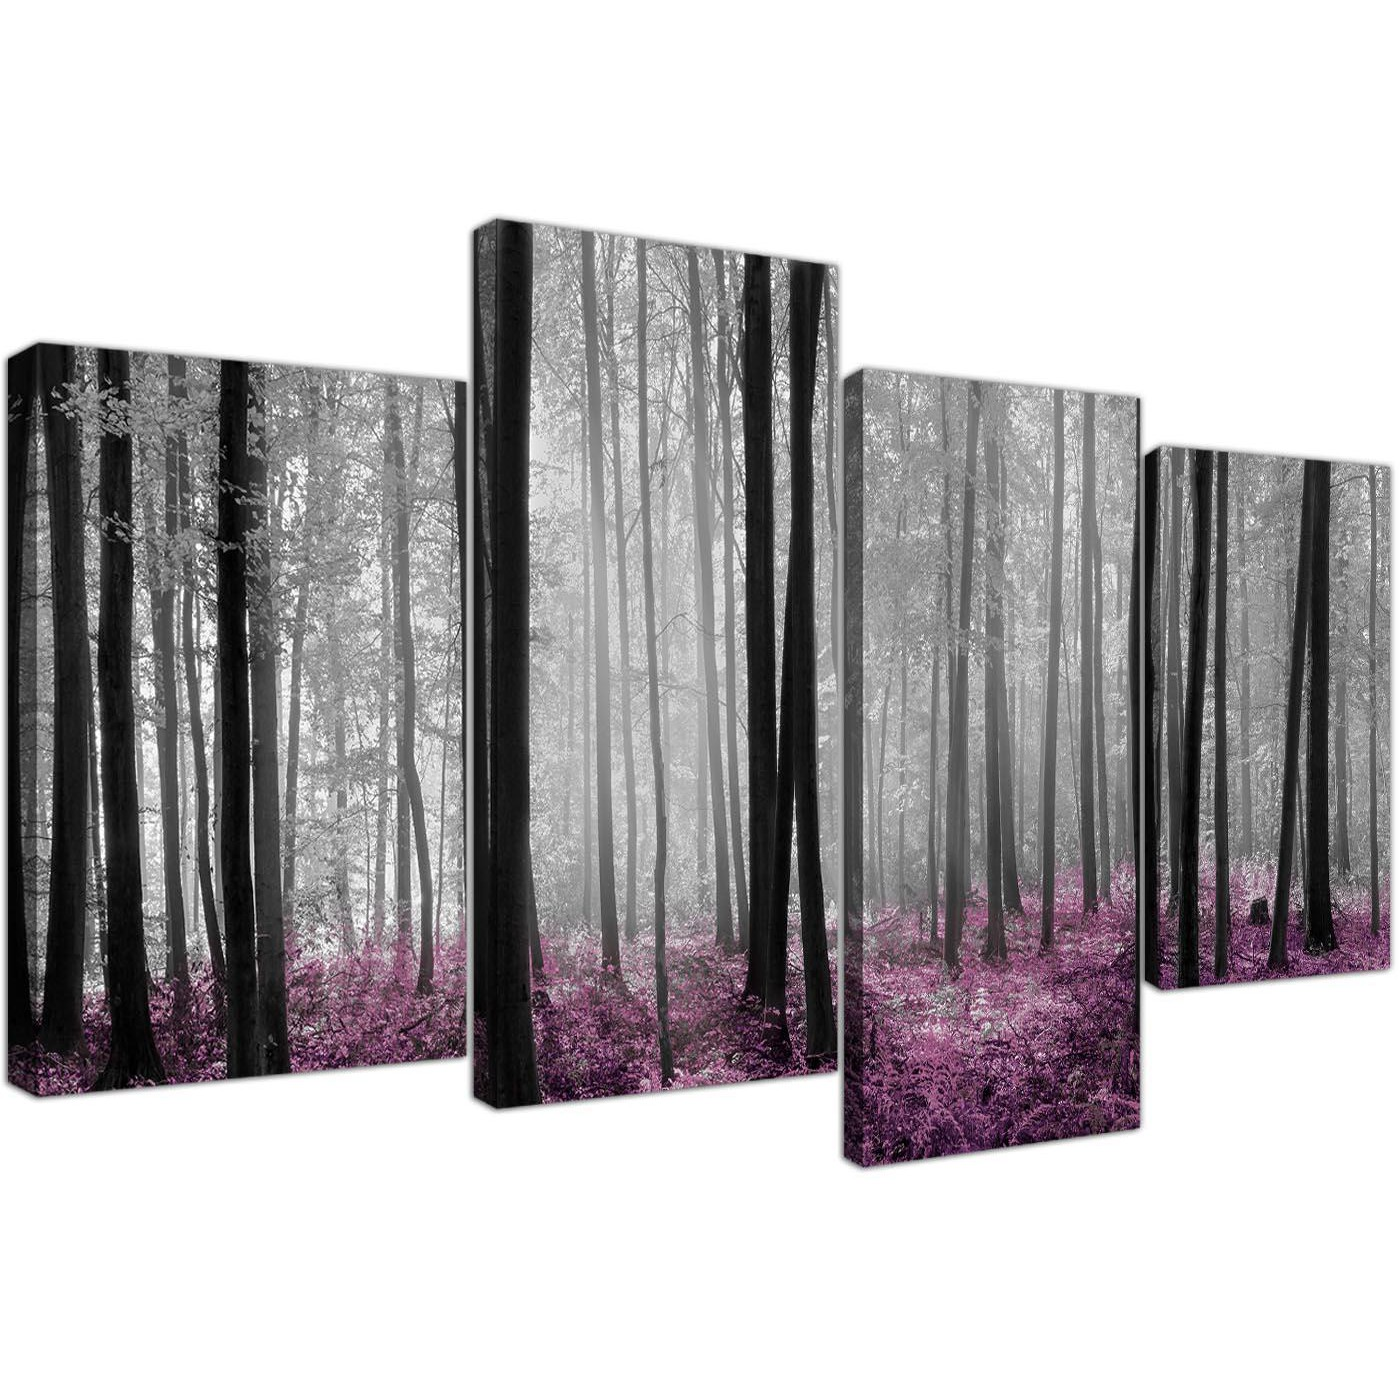 Cheap Canvas Pictures Black And White Plum Forest Woodland Trees Canvas Art